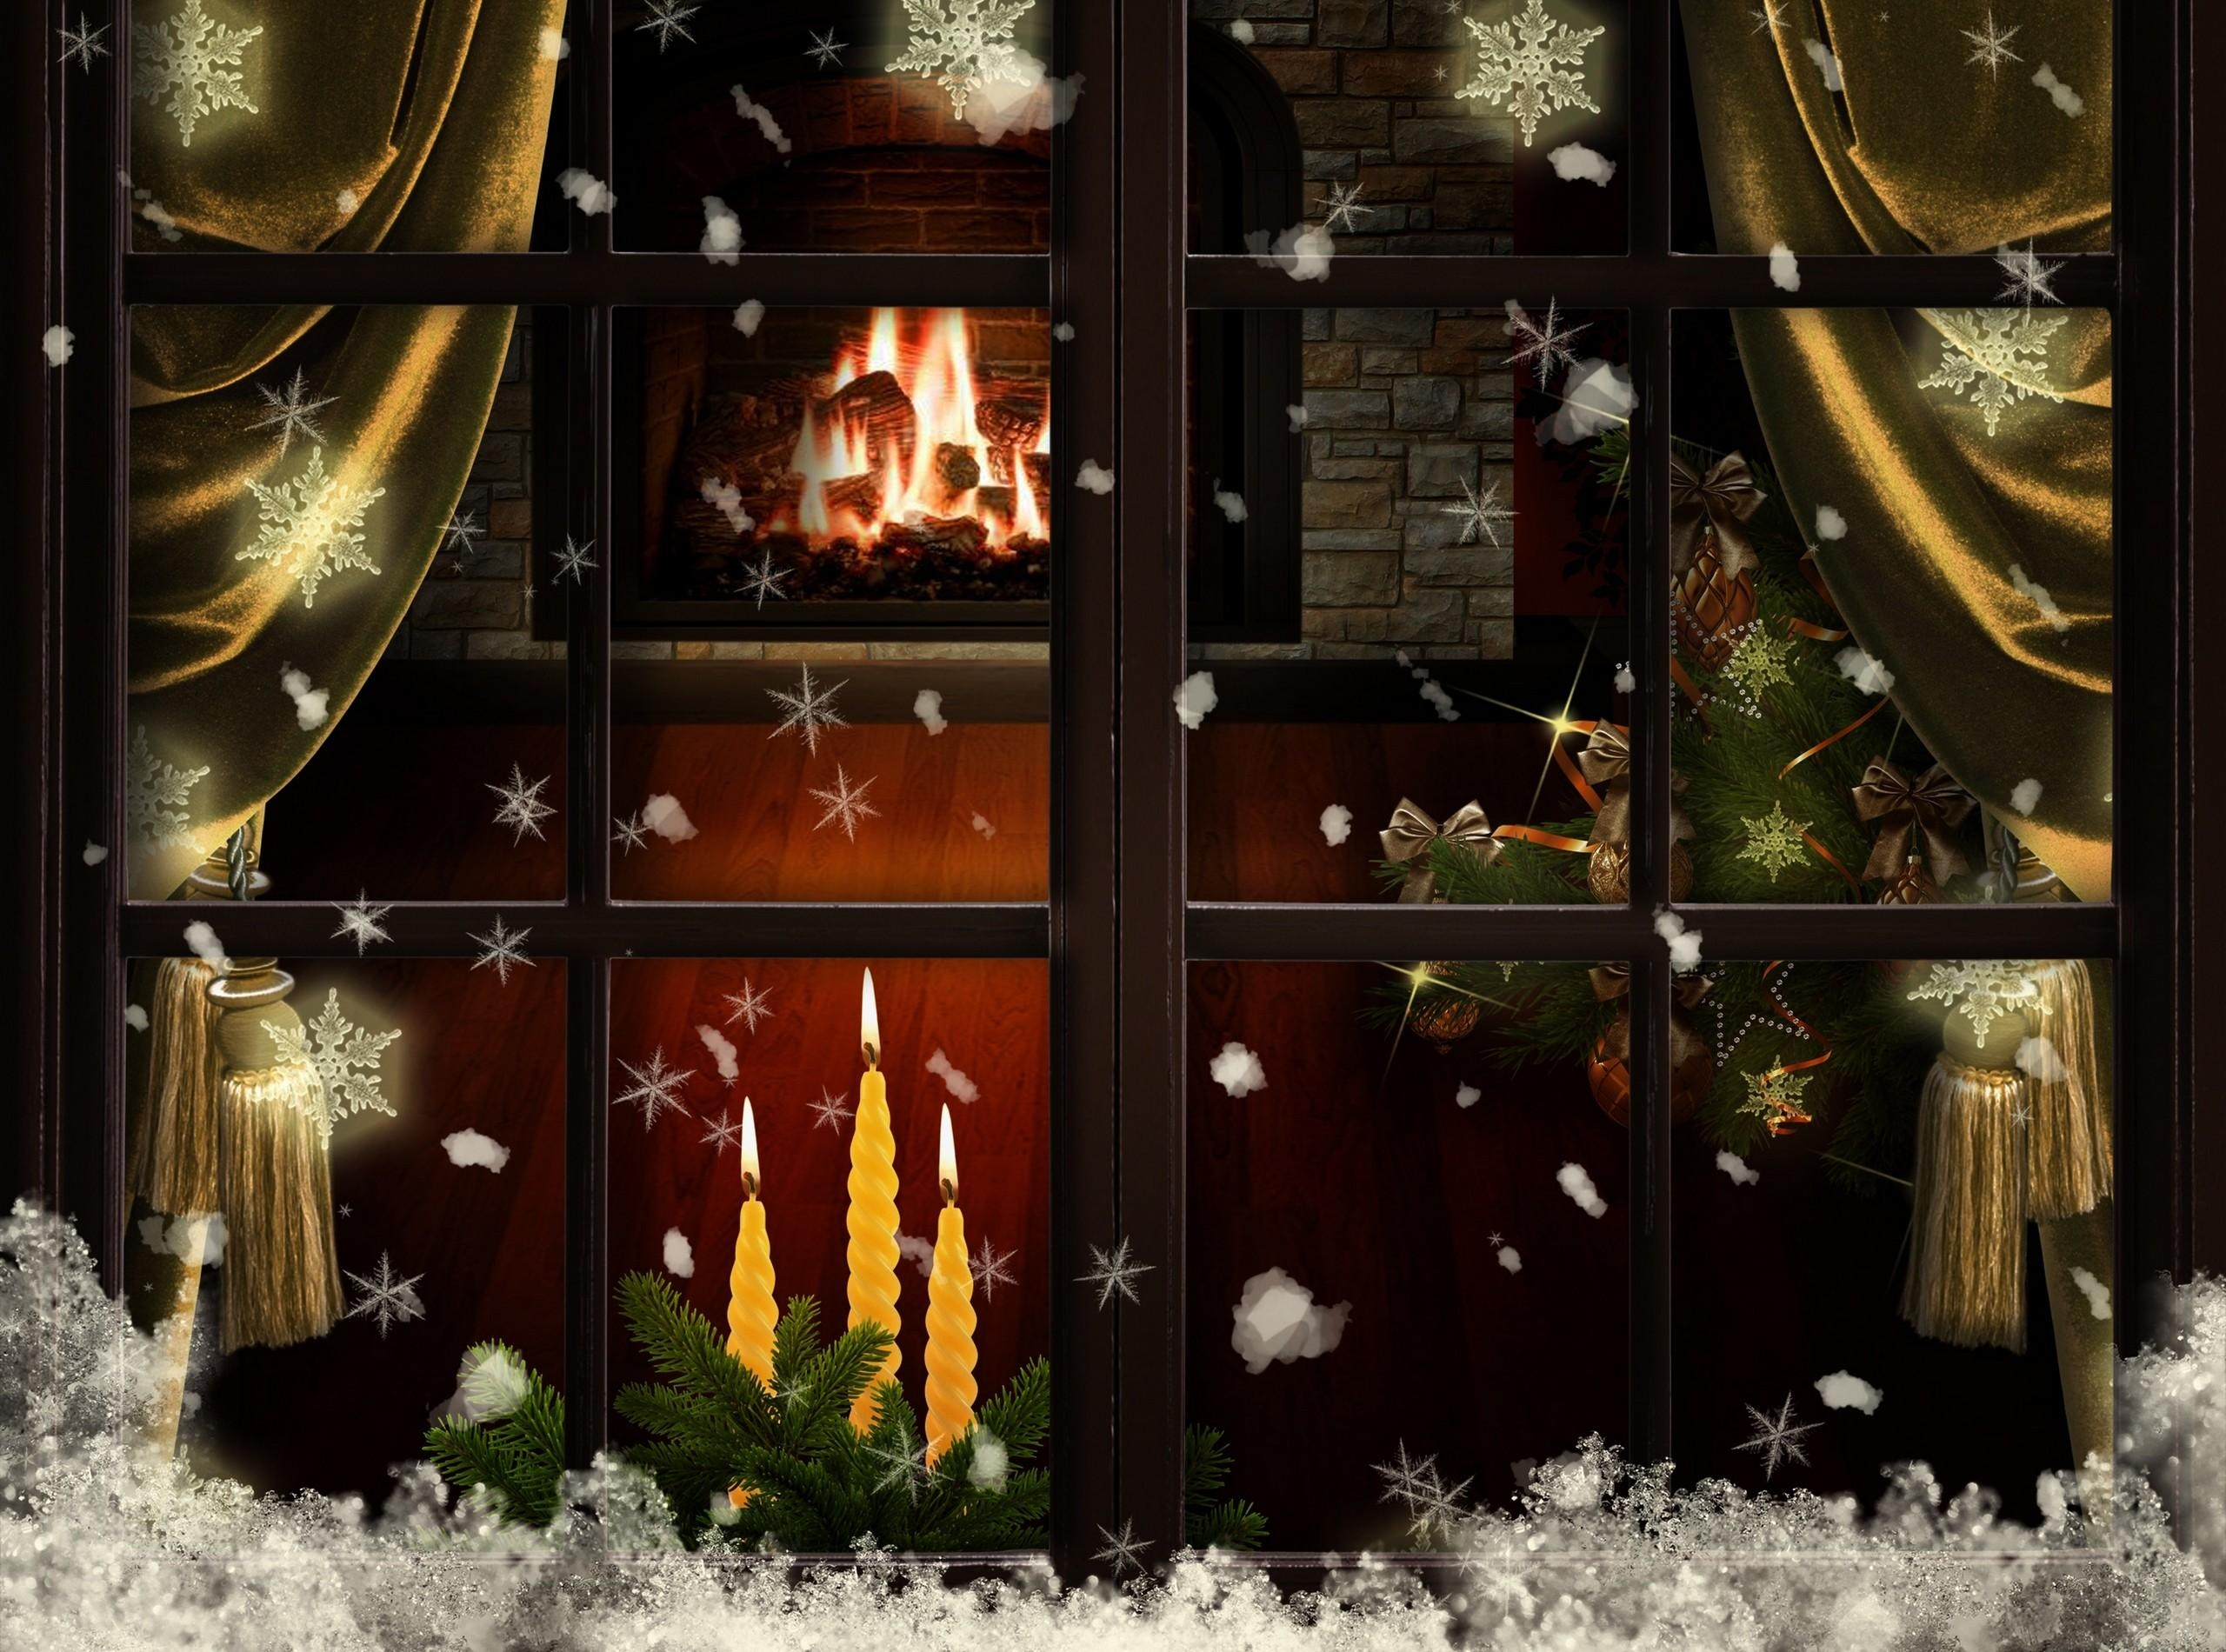 Christmas fireplace fire holiday festive decorations y